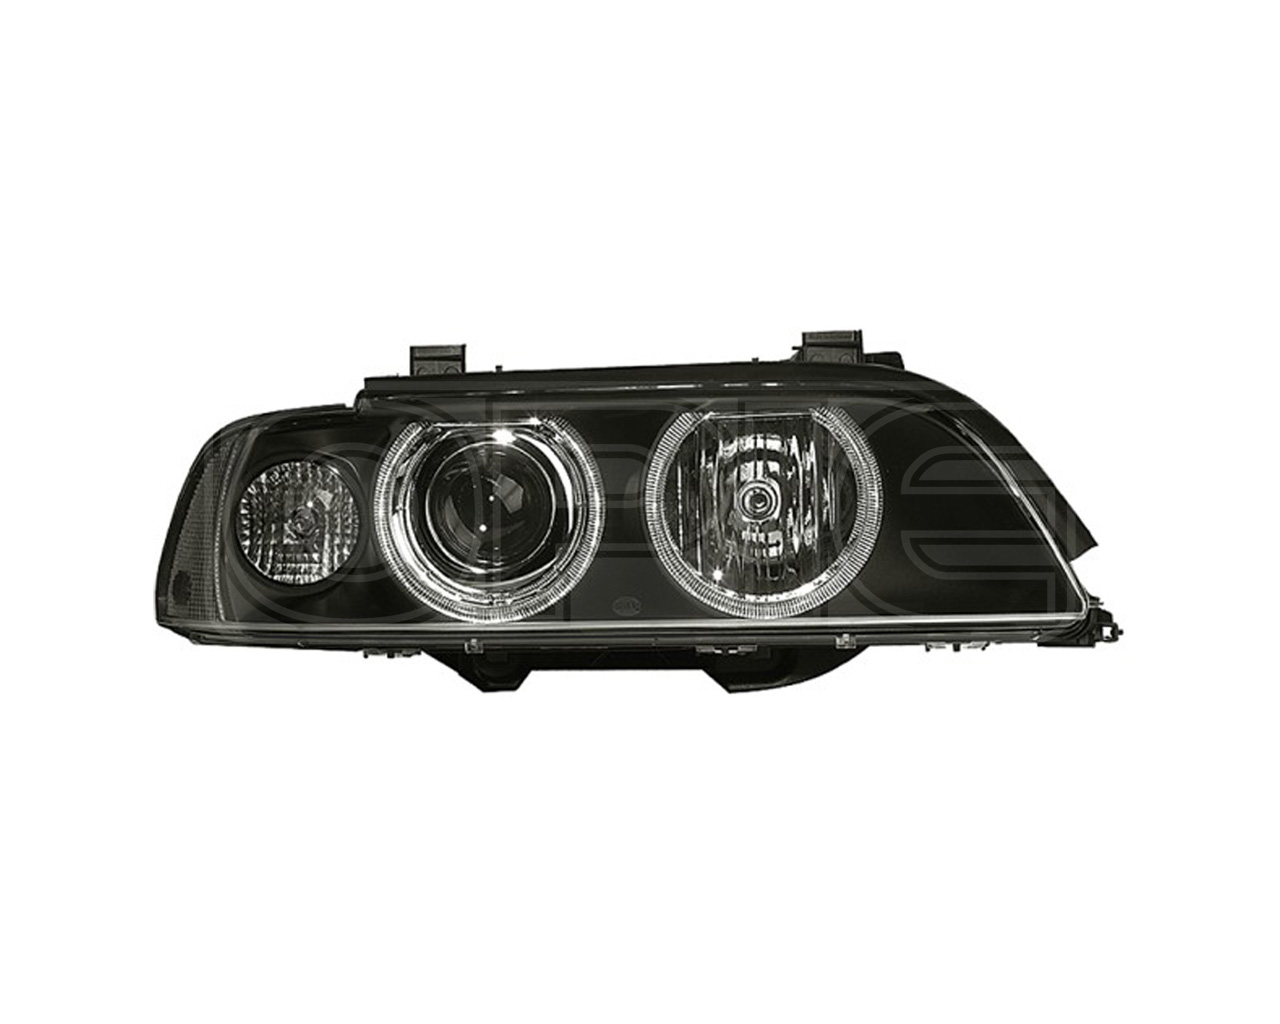 Headlight Headlamp Fits Bmw 5 E39 Xenon Right Hand Side 00 Halogen H7 With Clear Lens Hella 1ll 008 052 601